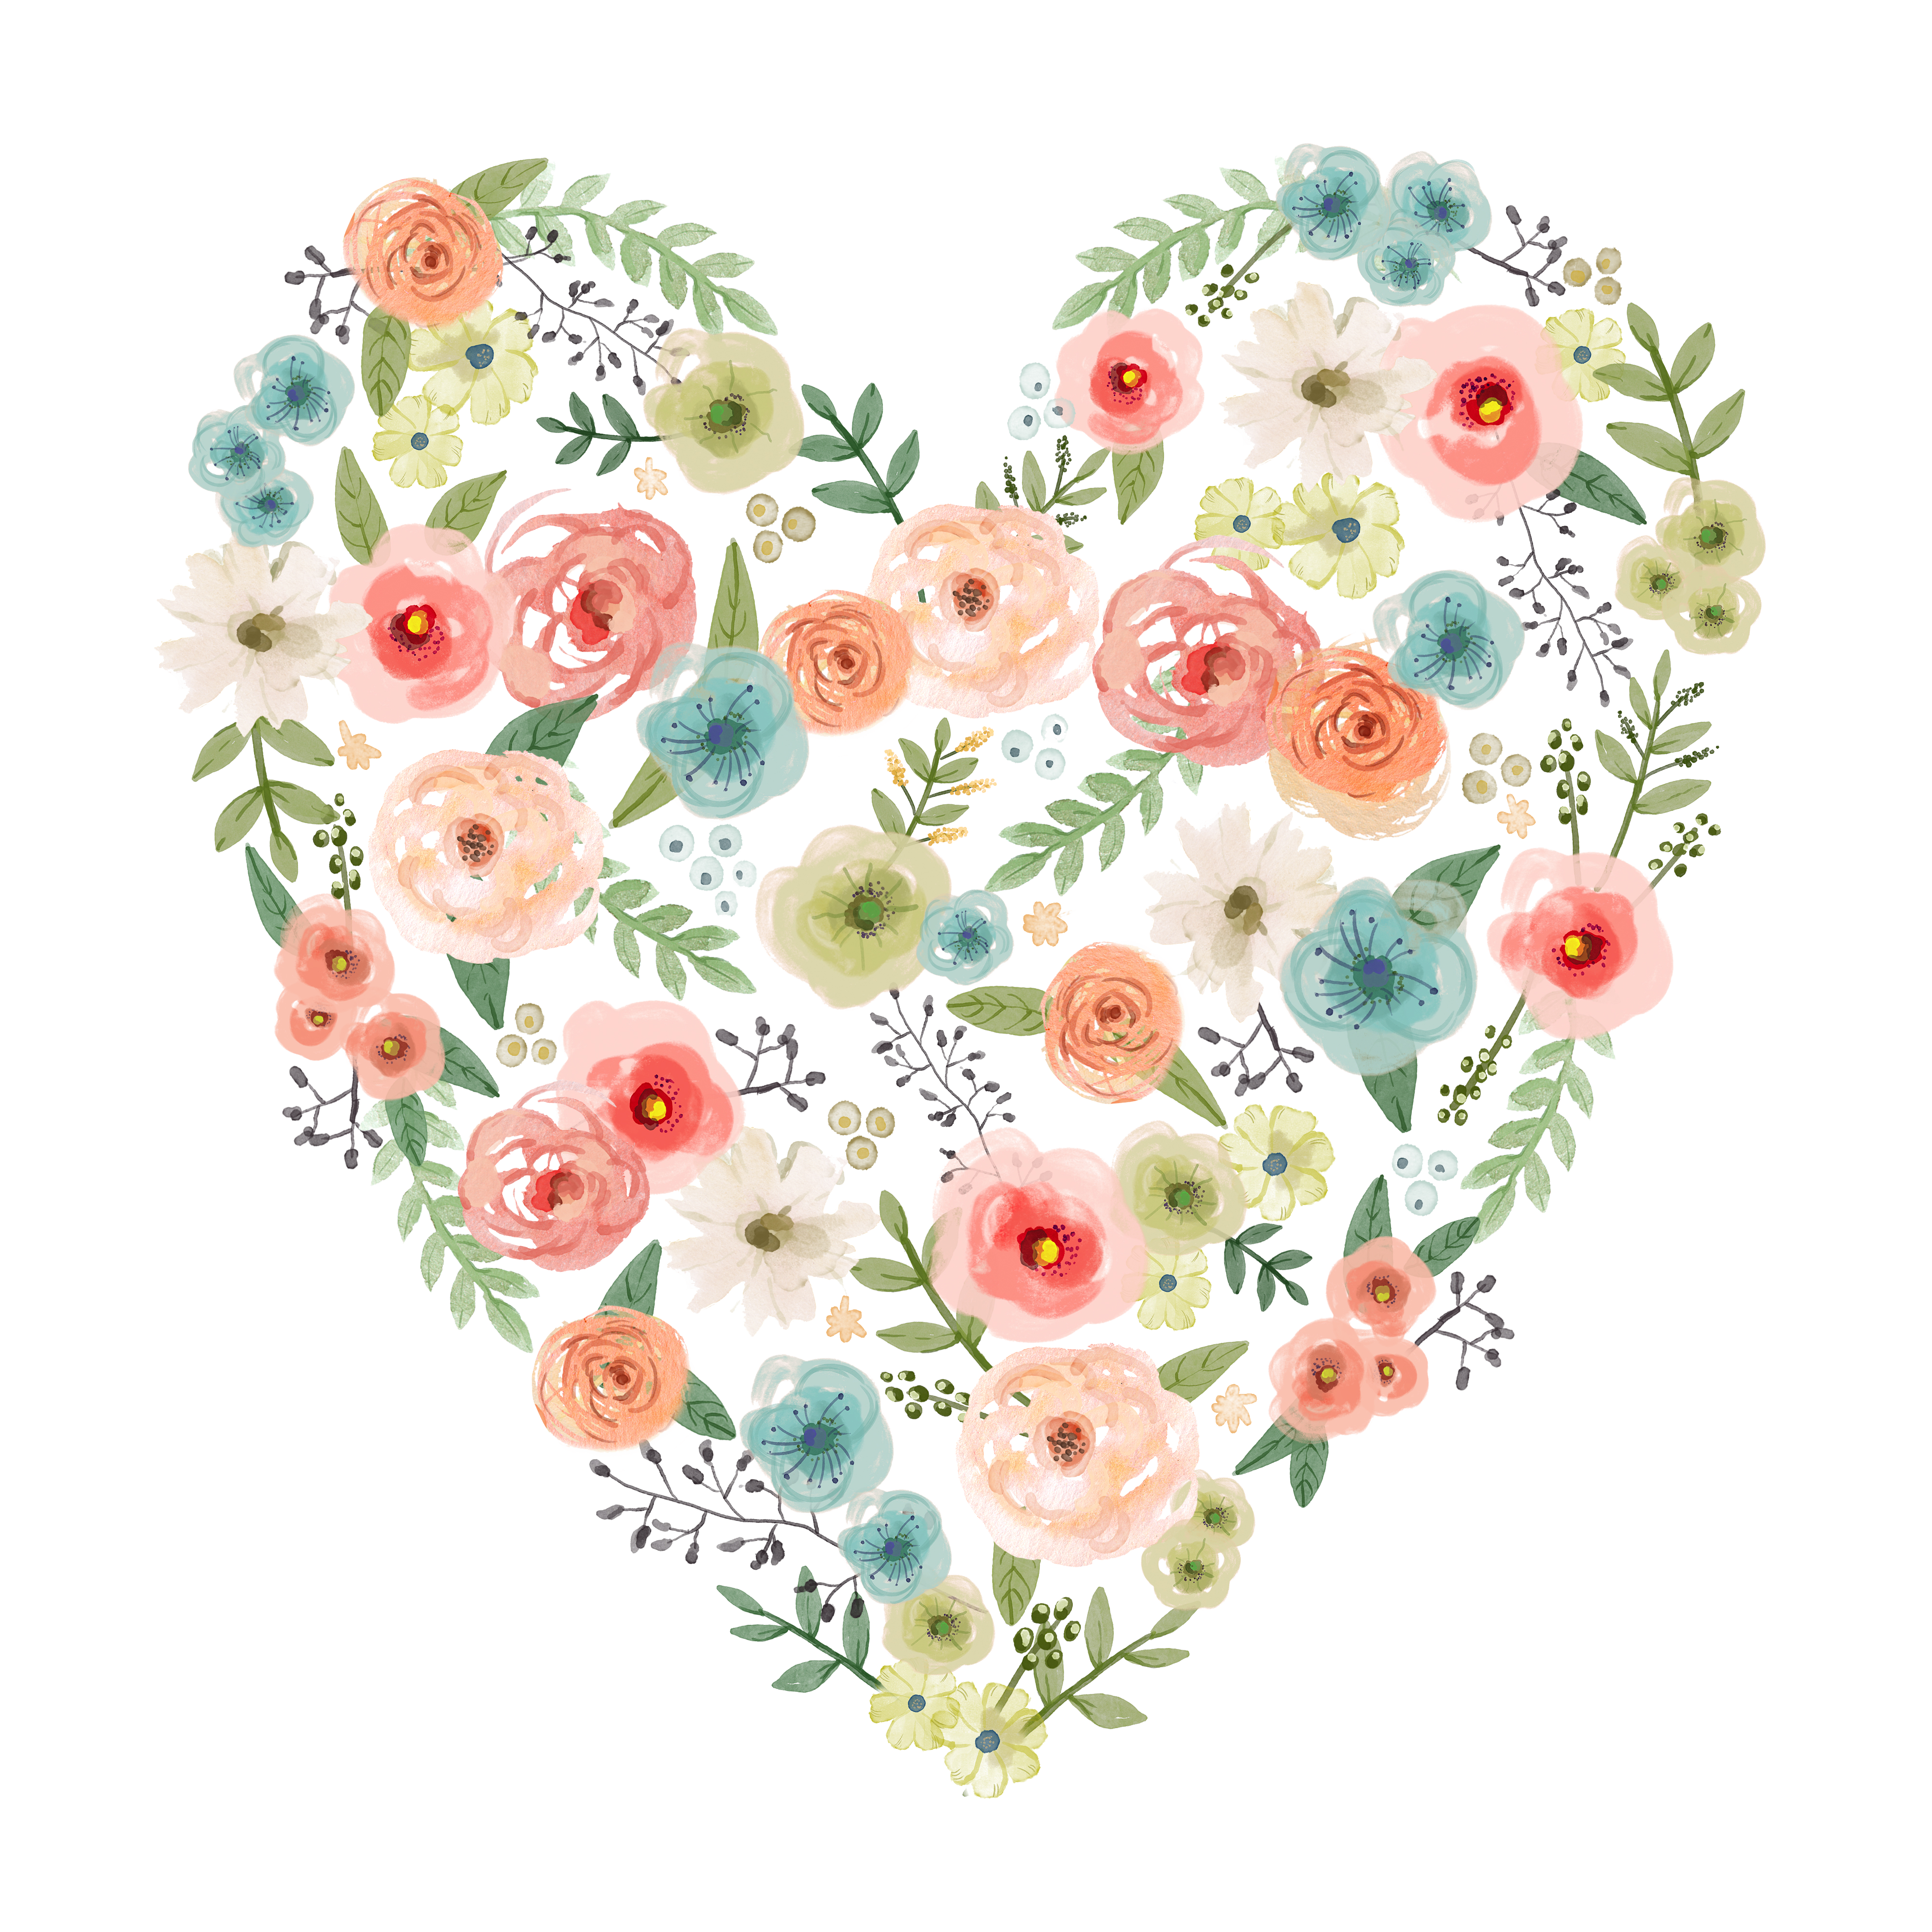 Hearts clipart bouquet. Wedding invitation watercolor painting